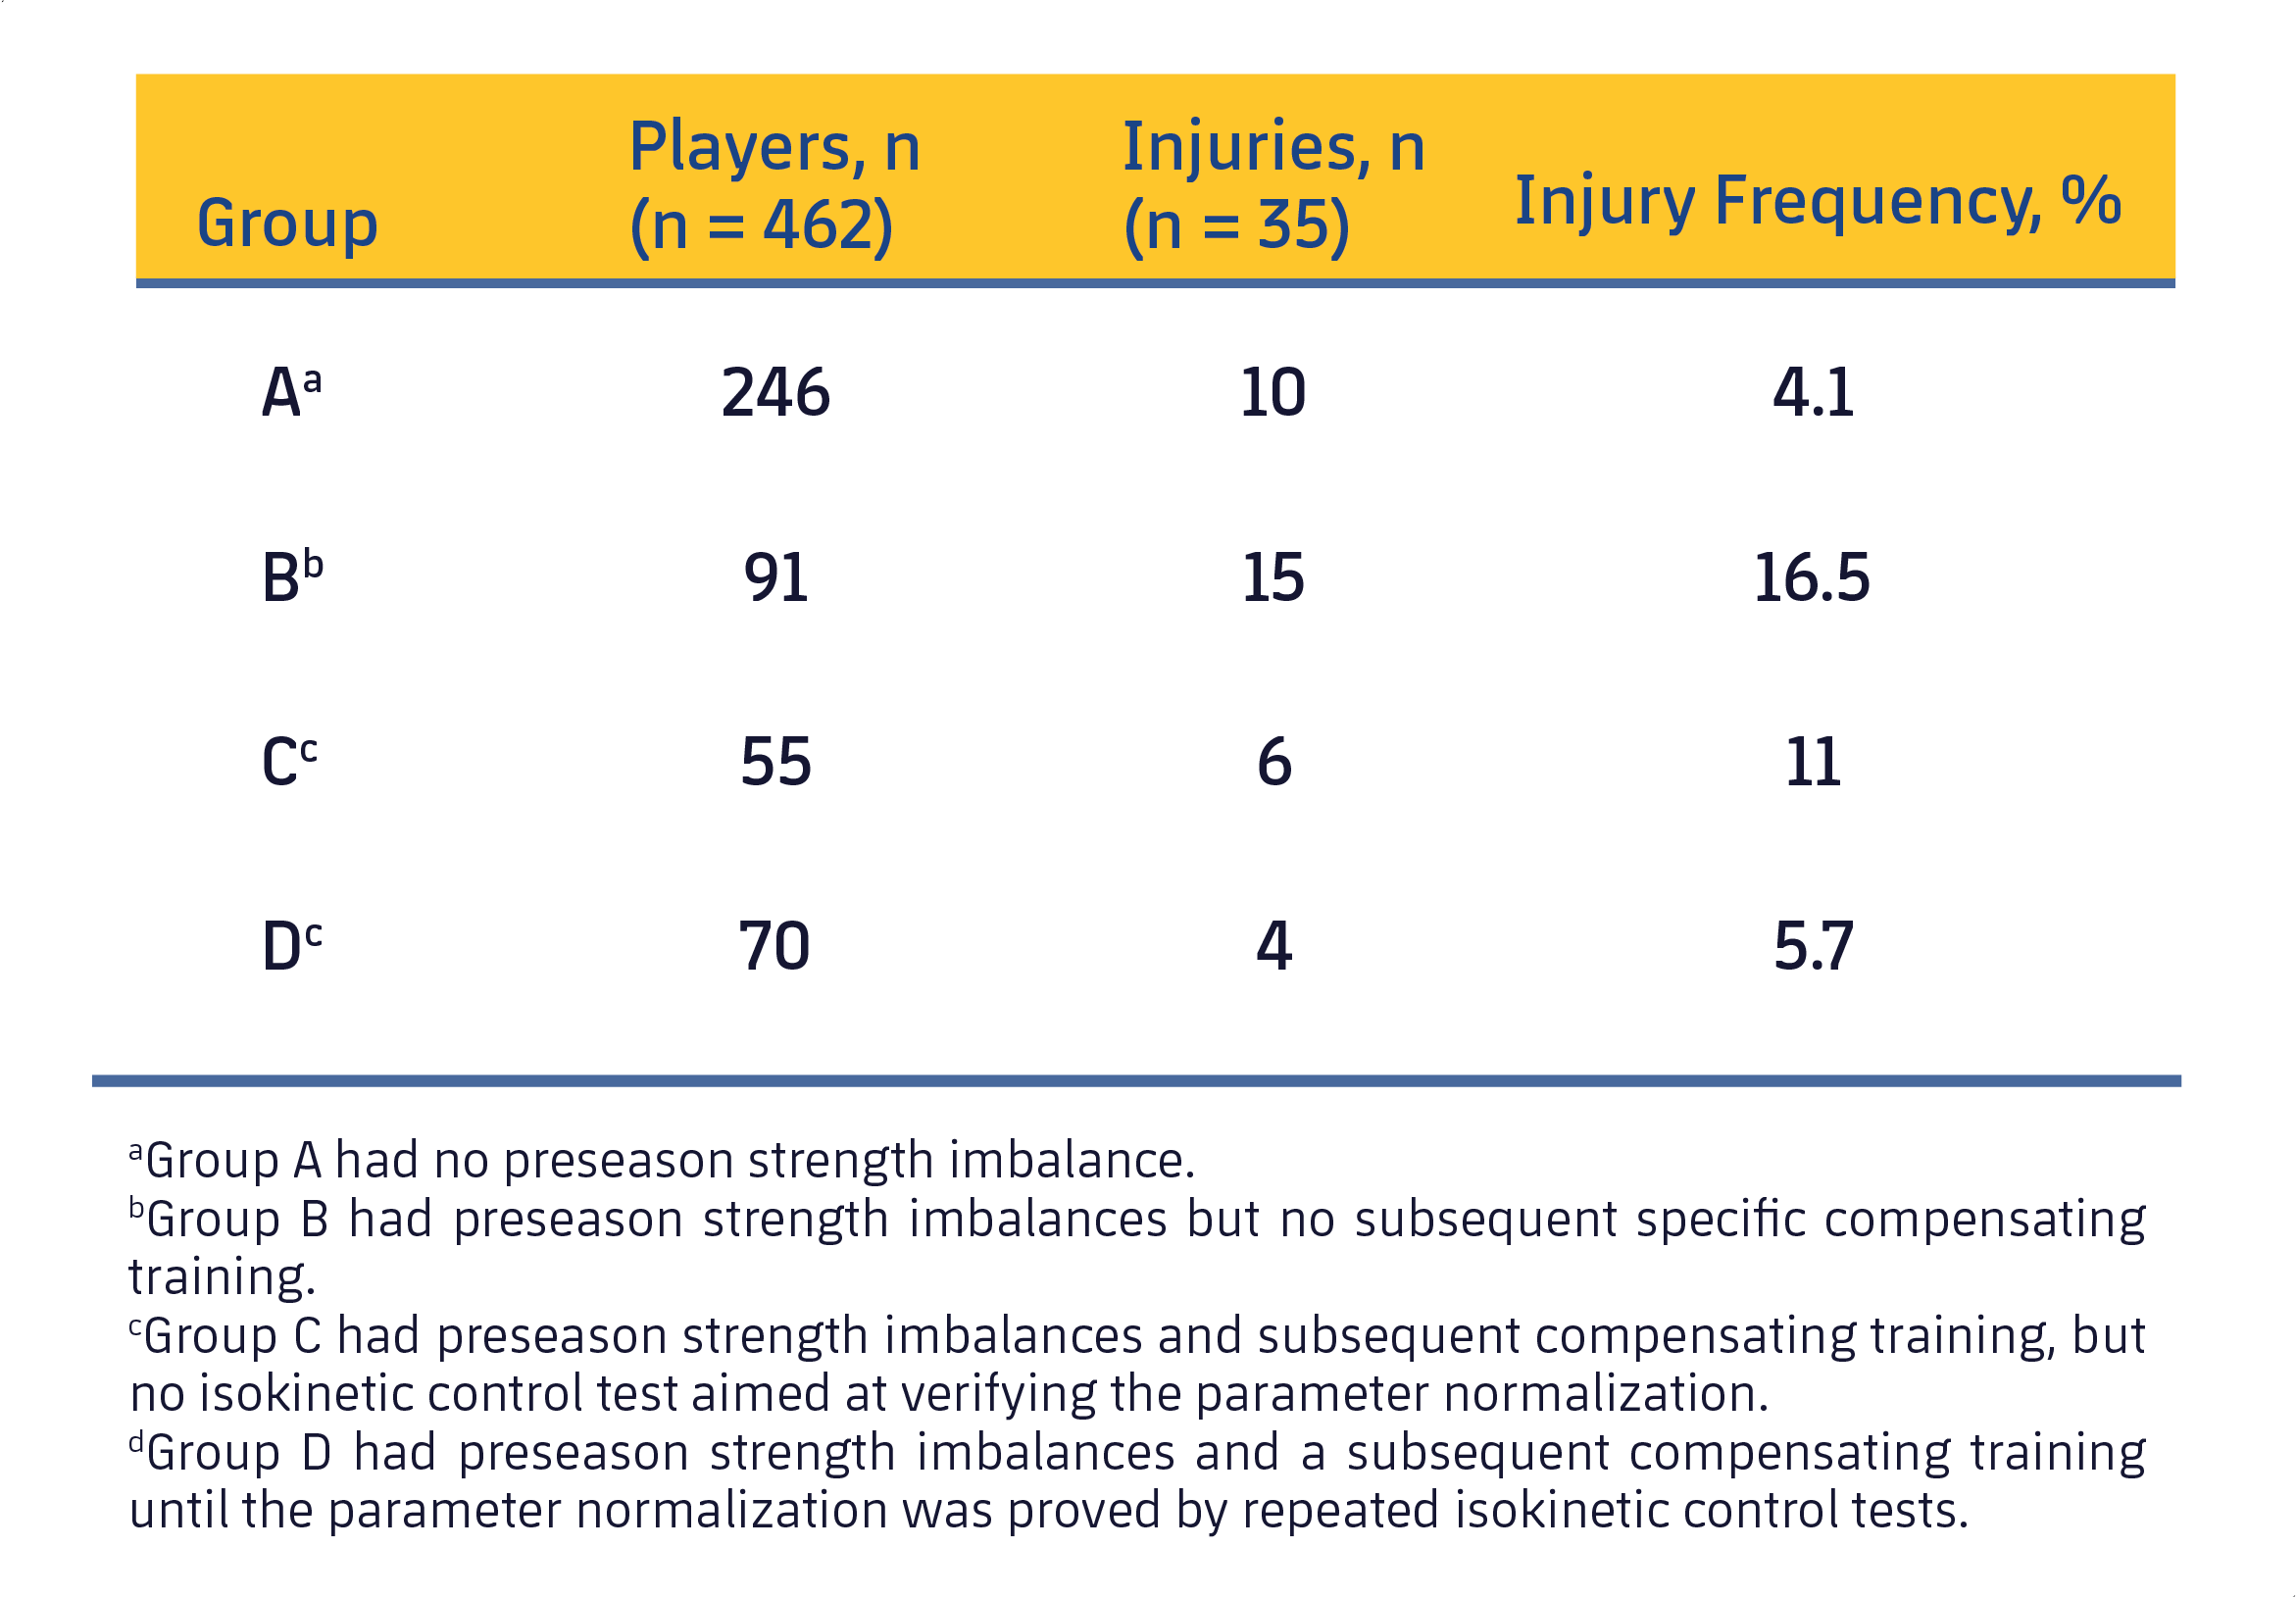 Table 2. Frequency of hamstring injuries among the 4 groups (Croisier et al., 2008).